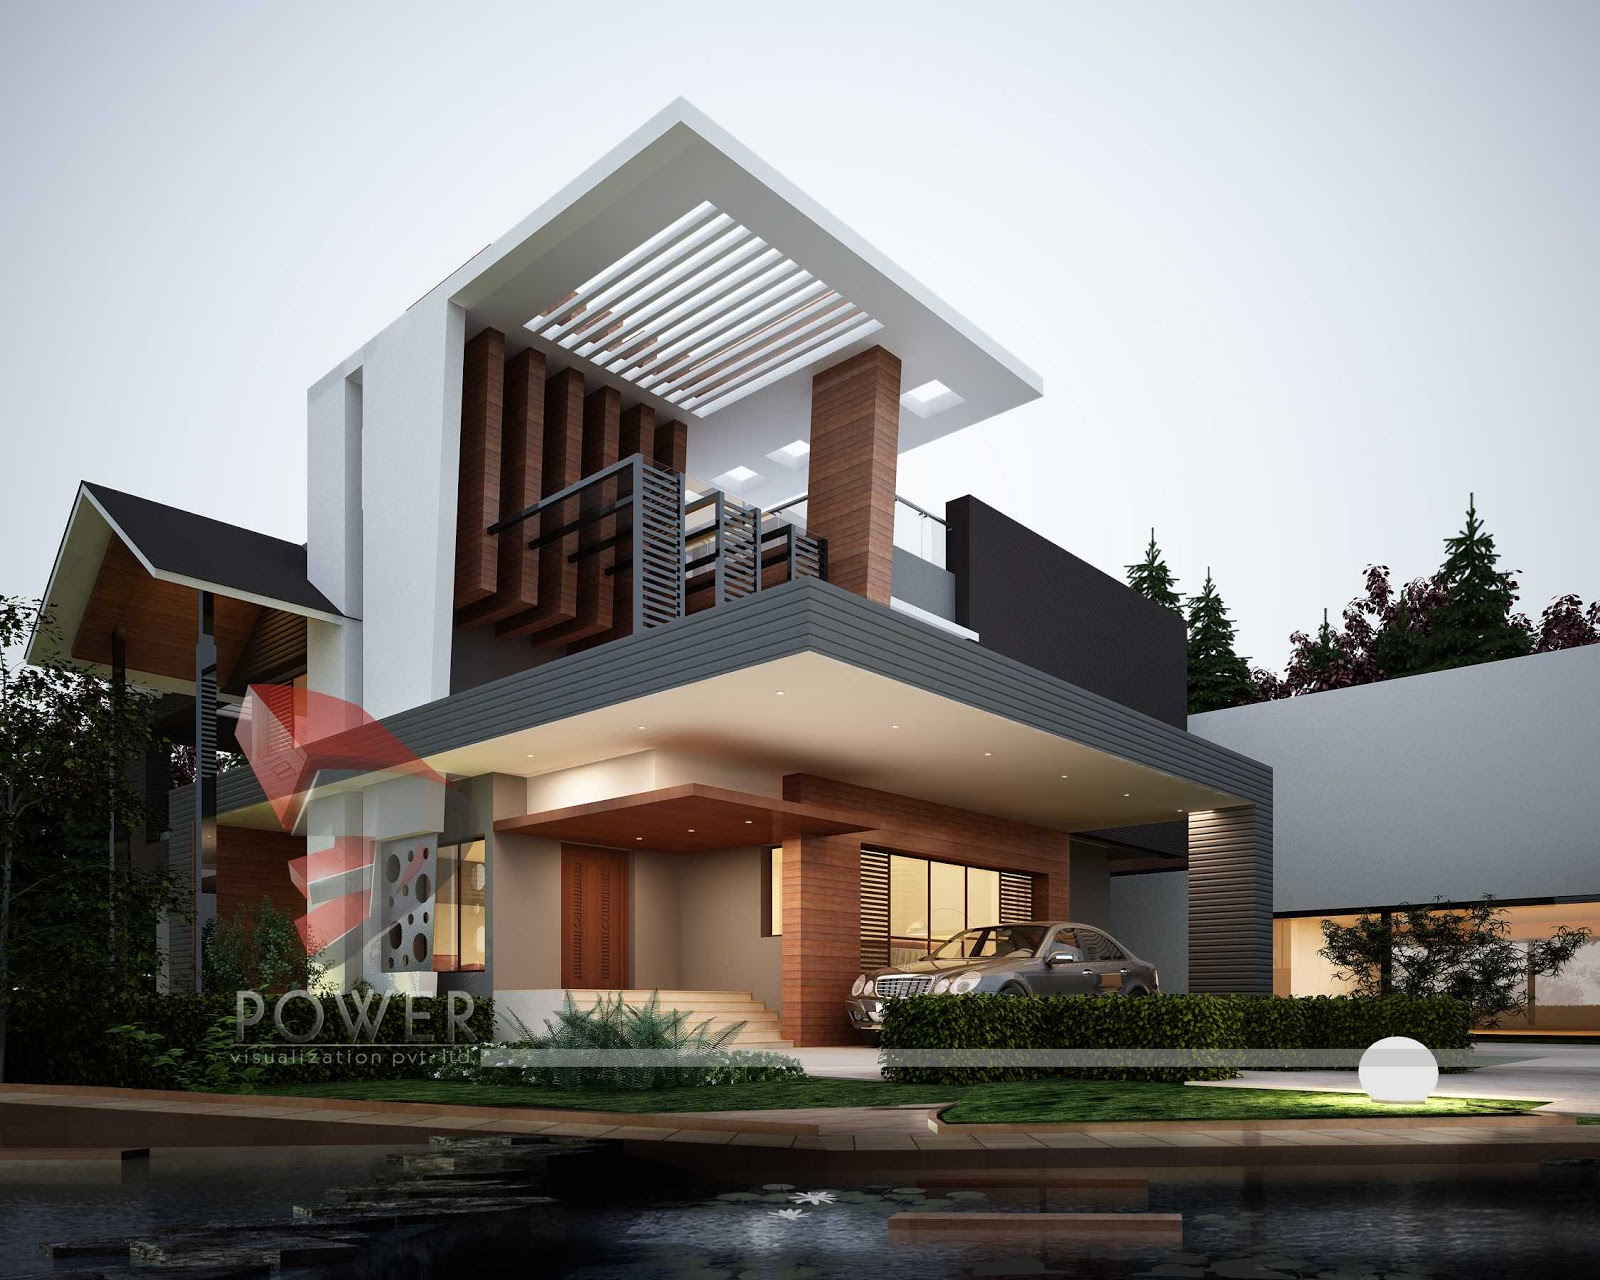 modern house design in pakistan, modern house design with pool, modern house design in mexico, modern house design in south africa, modern house design in sri lanka, carcosa seri negara malaysia, modern house design in philippines, modern house design germany, modern house design in asia, on malaysia modern house design